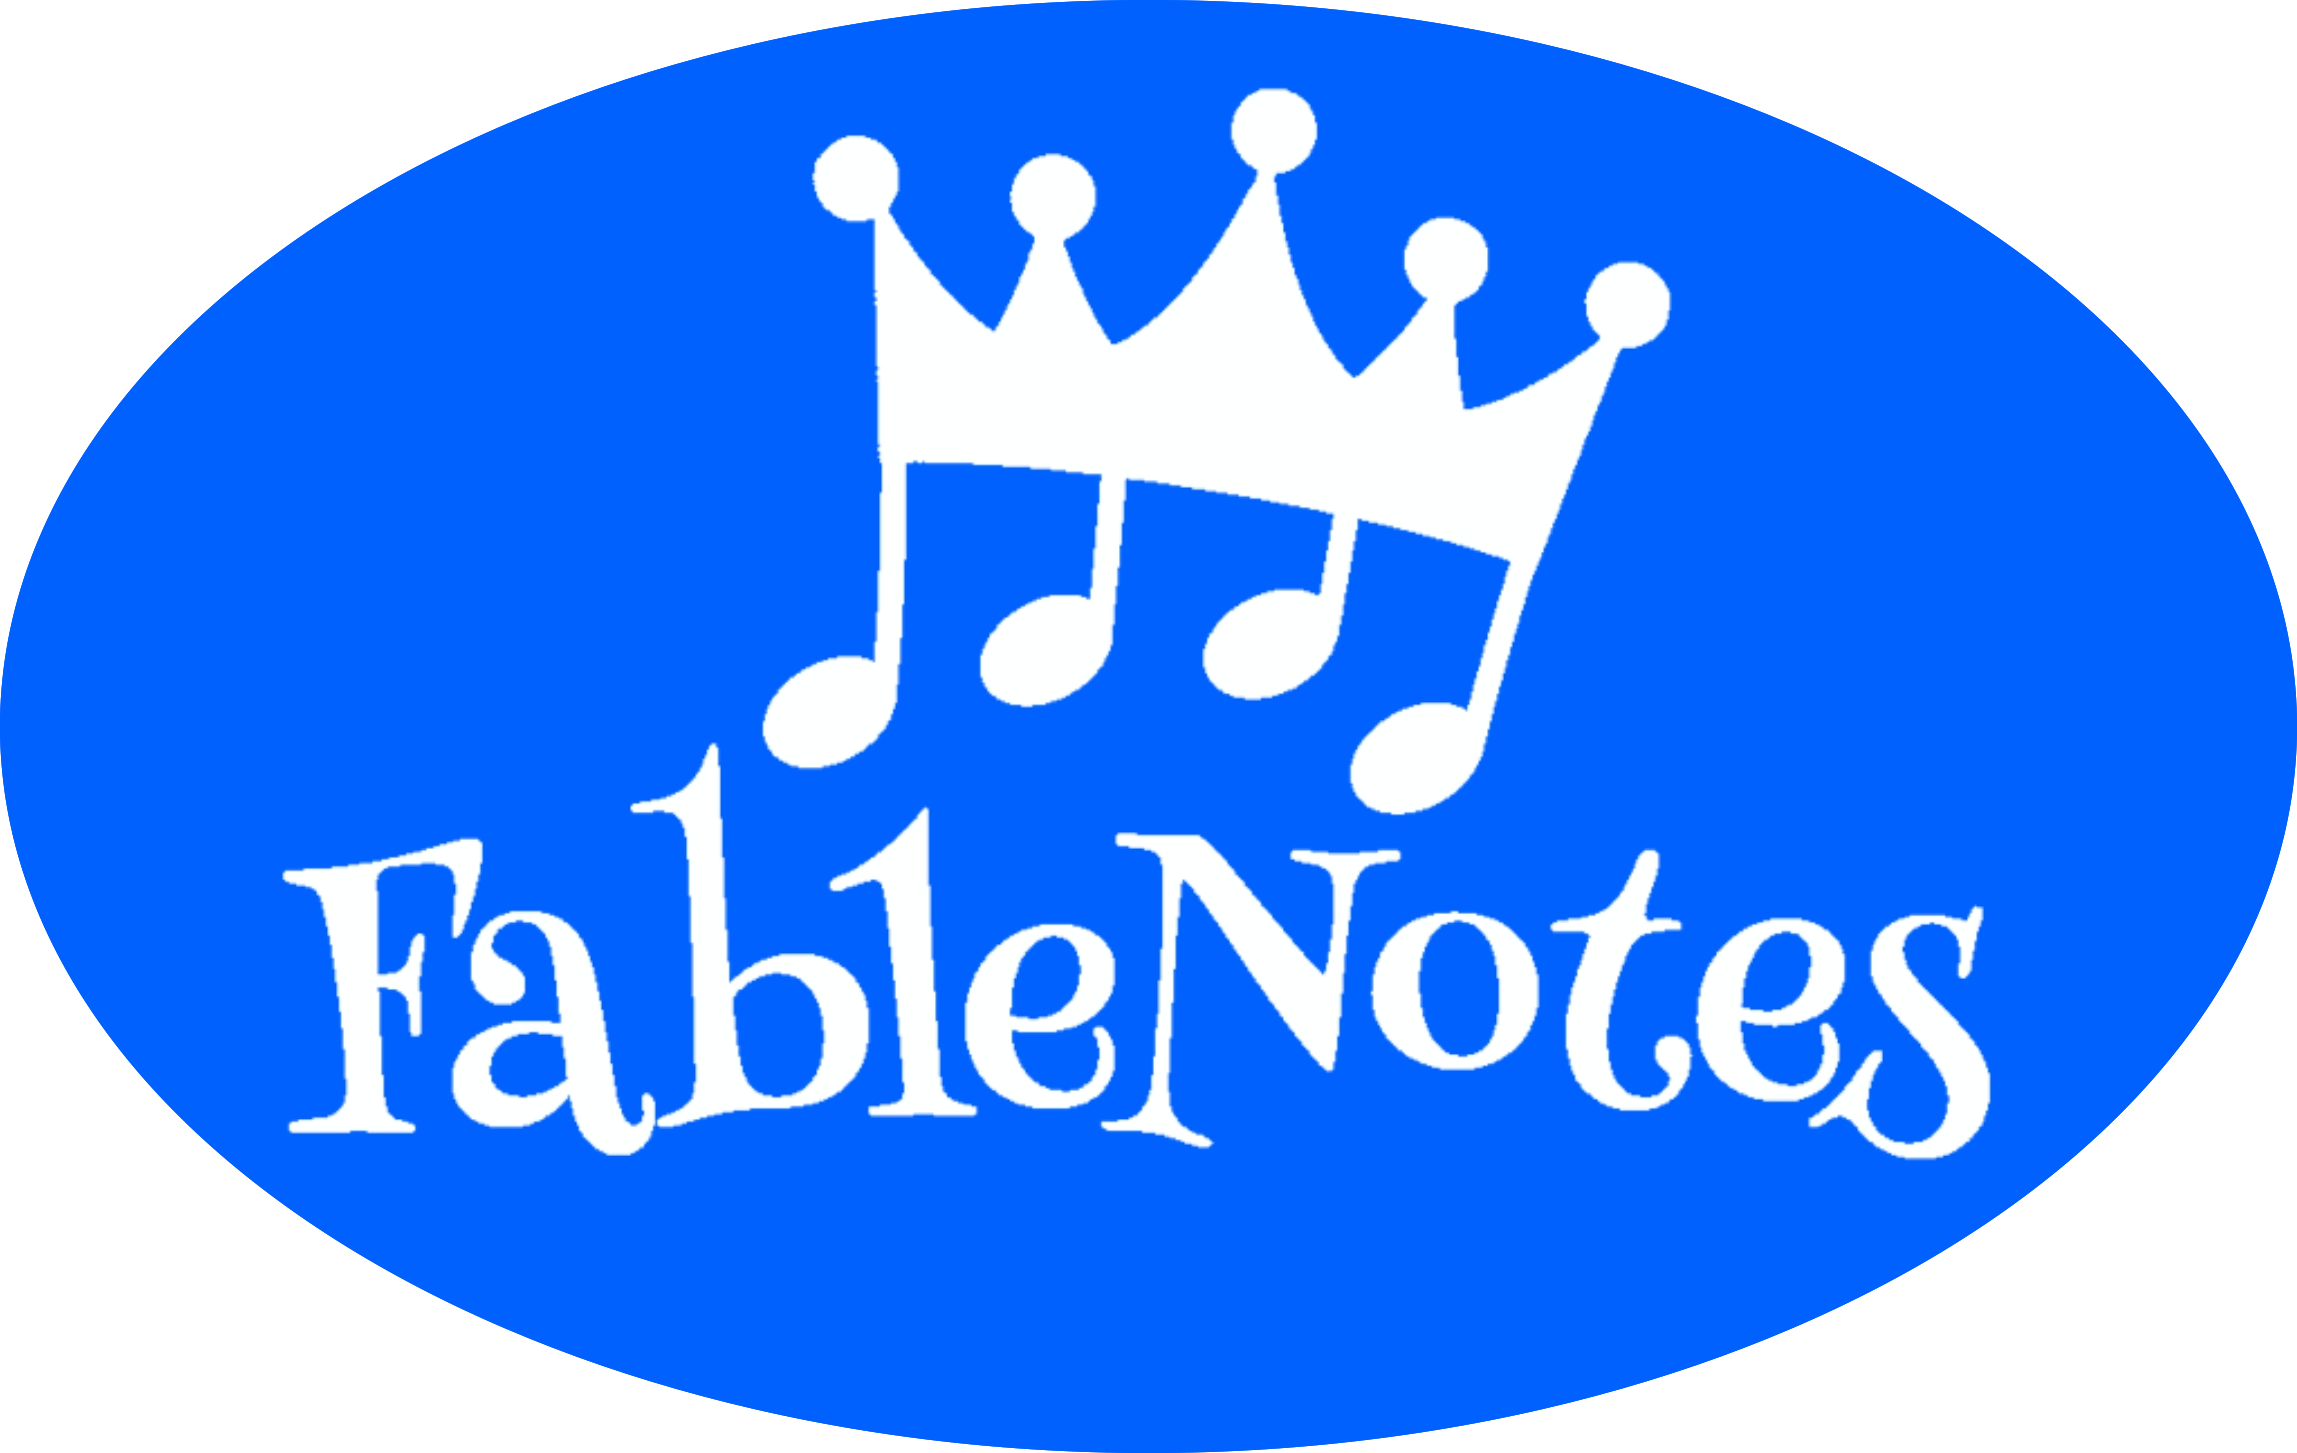 FableNotes